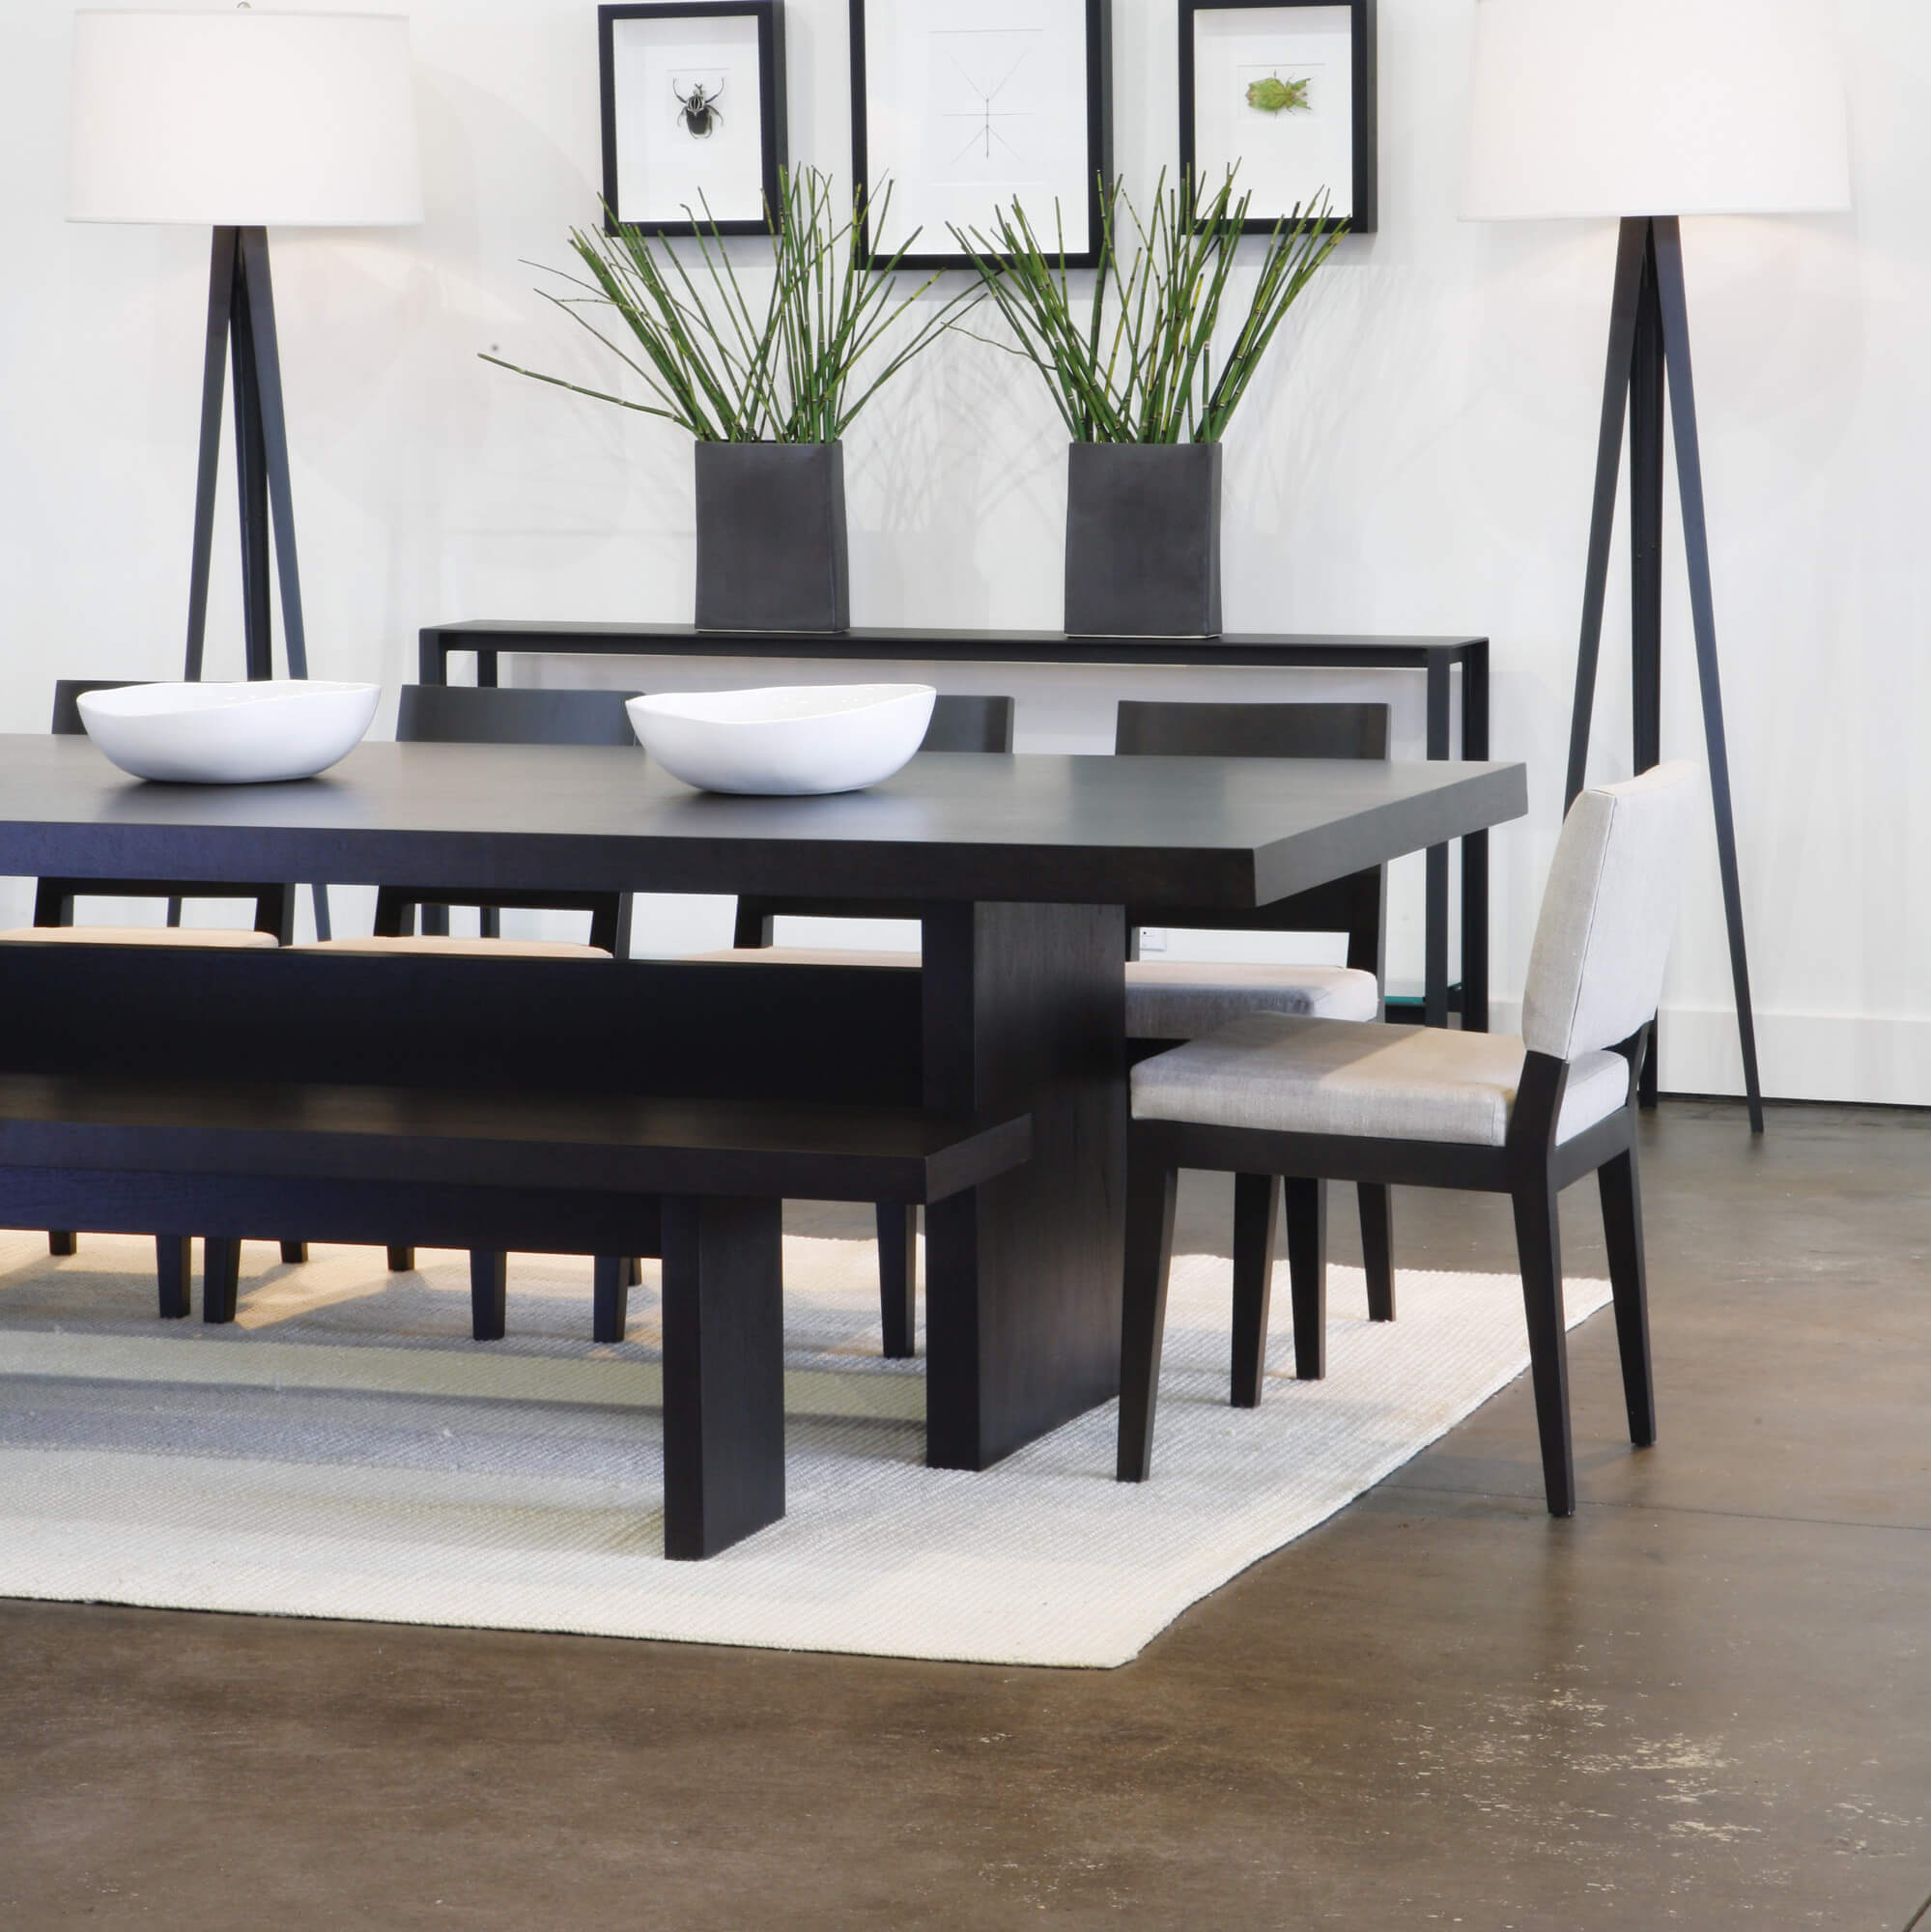 Etonnant 5 Piece Modern Dining Room Set With Bench. This Is A Great Dining Room  Furniture